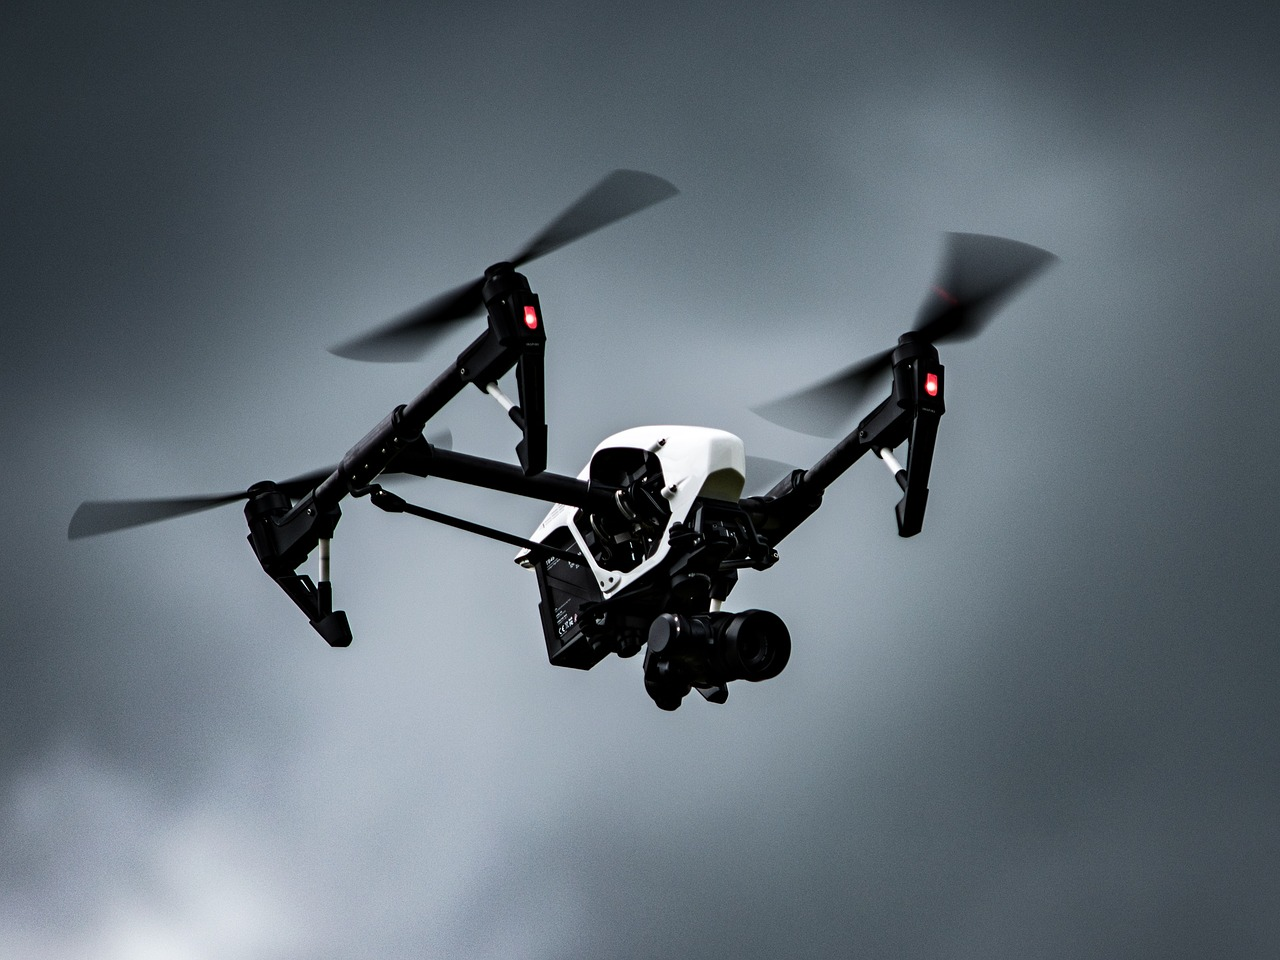 Jammu Drone Attack: Analyzing Current Legal Frameworks that Regulate Drone Warfare by Non-State Actors